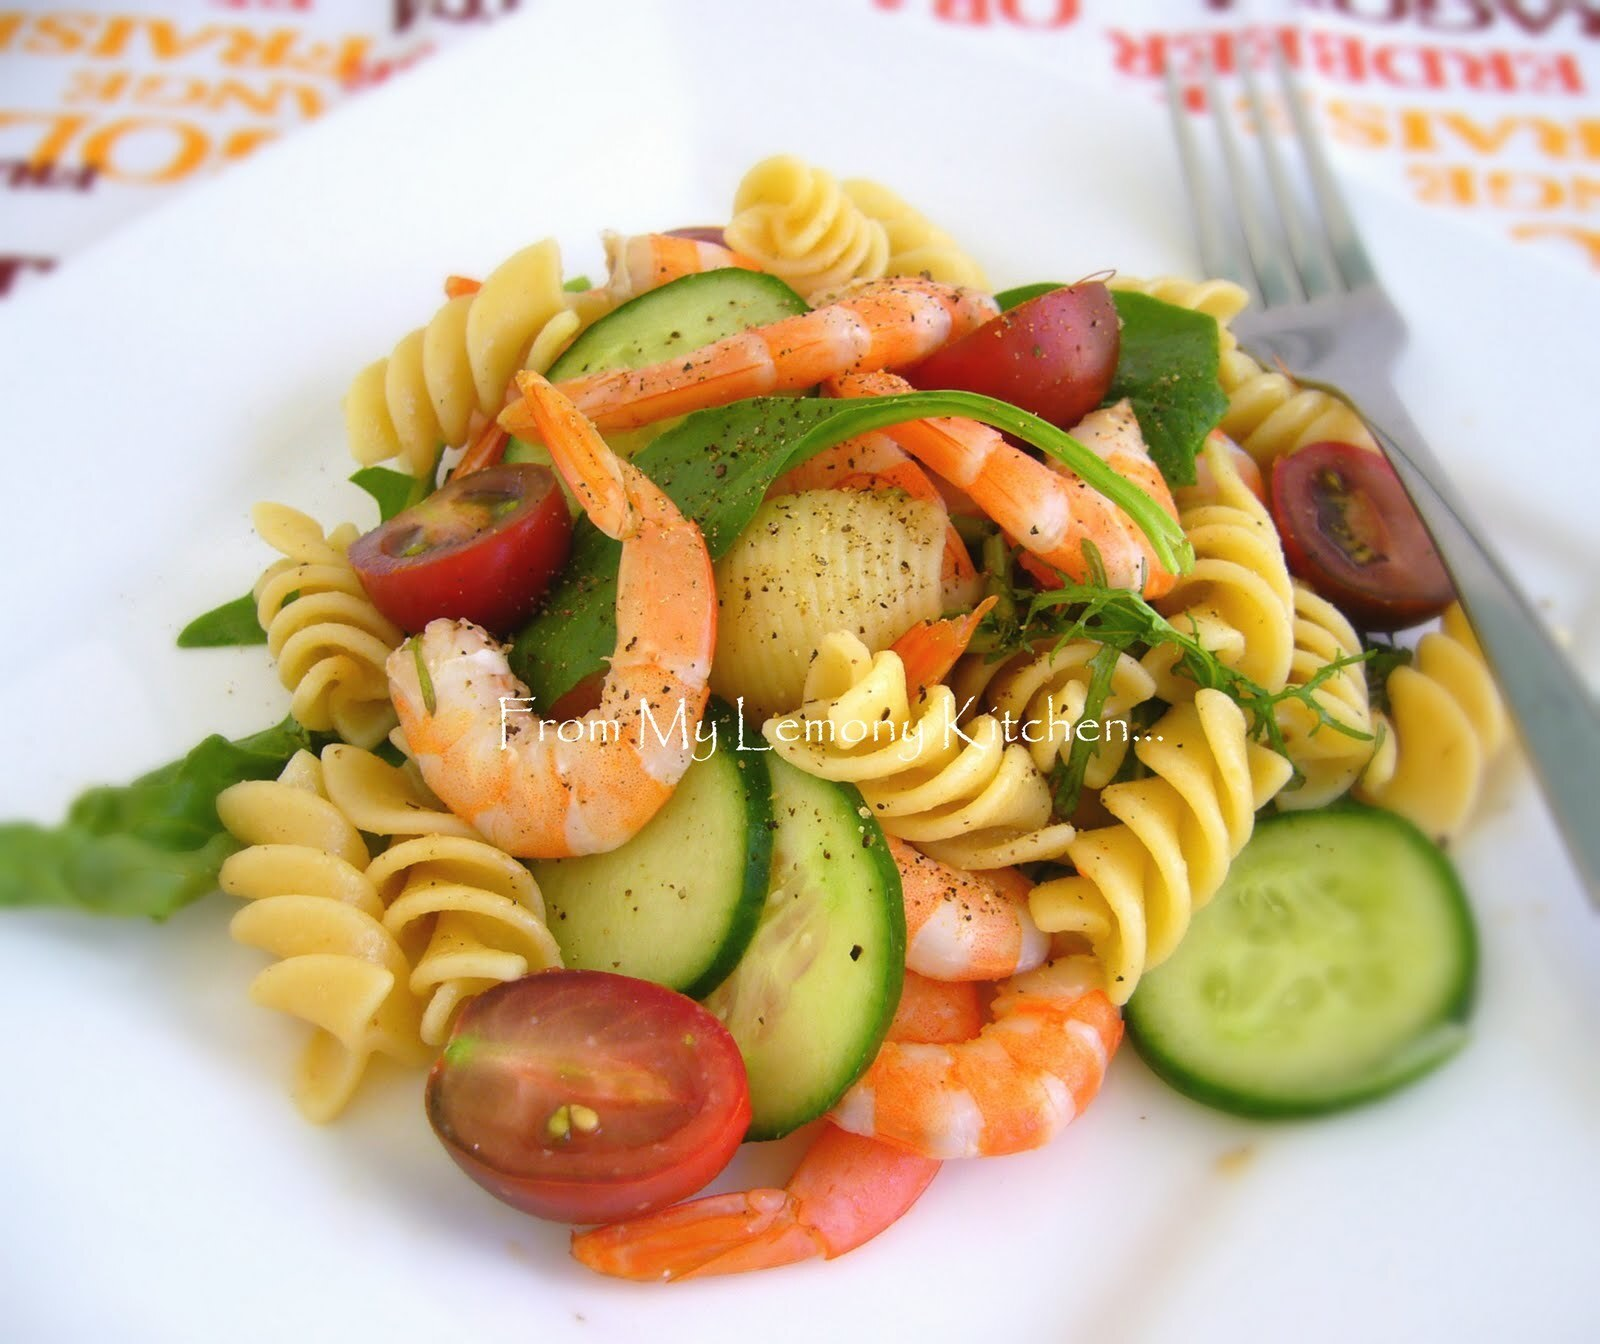 Prawns, Kumatoes and Pasta Salad